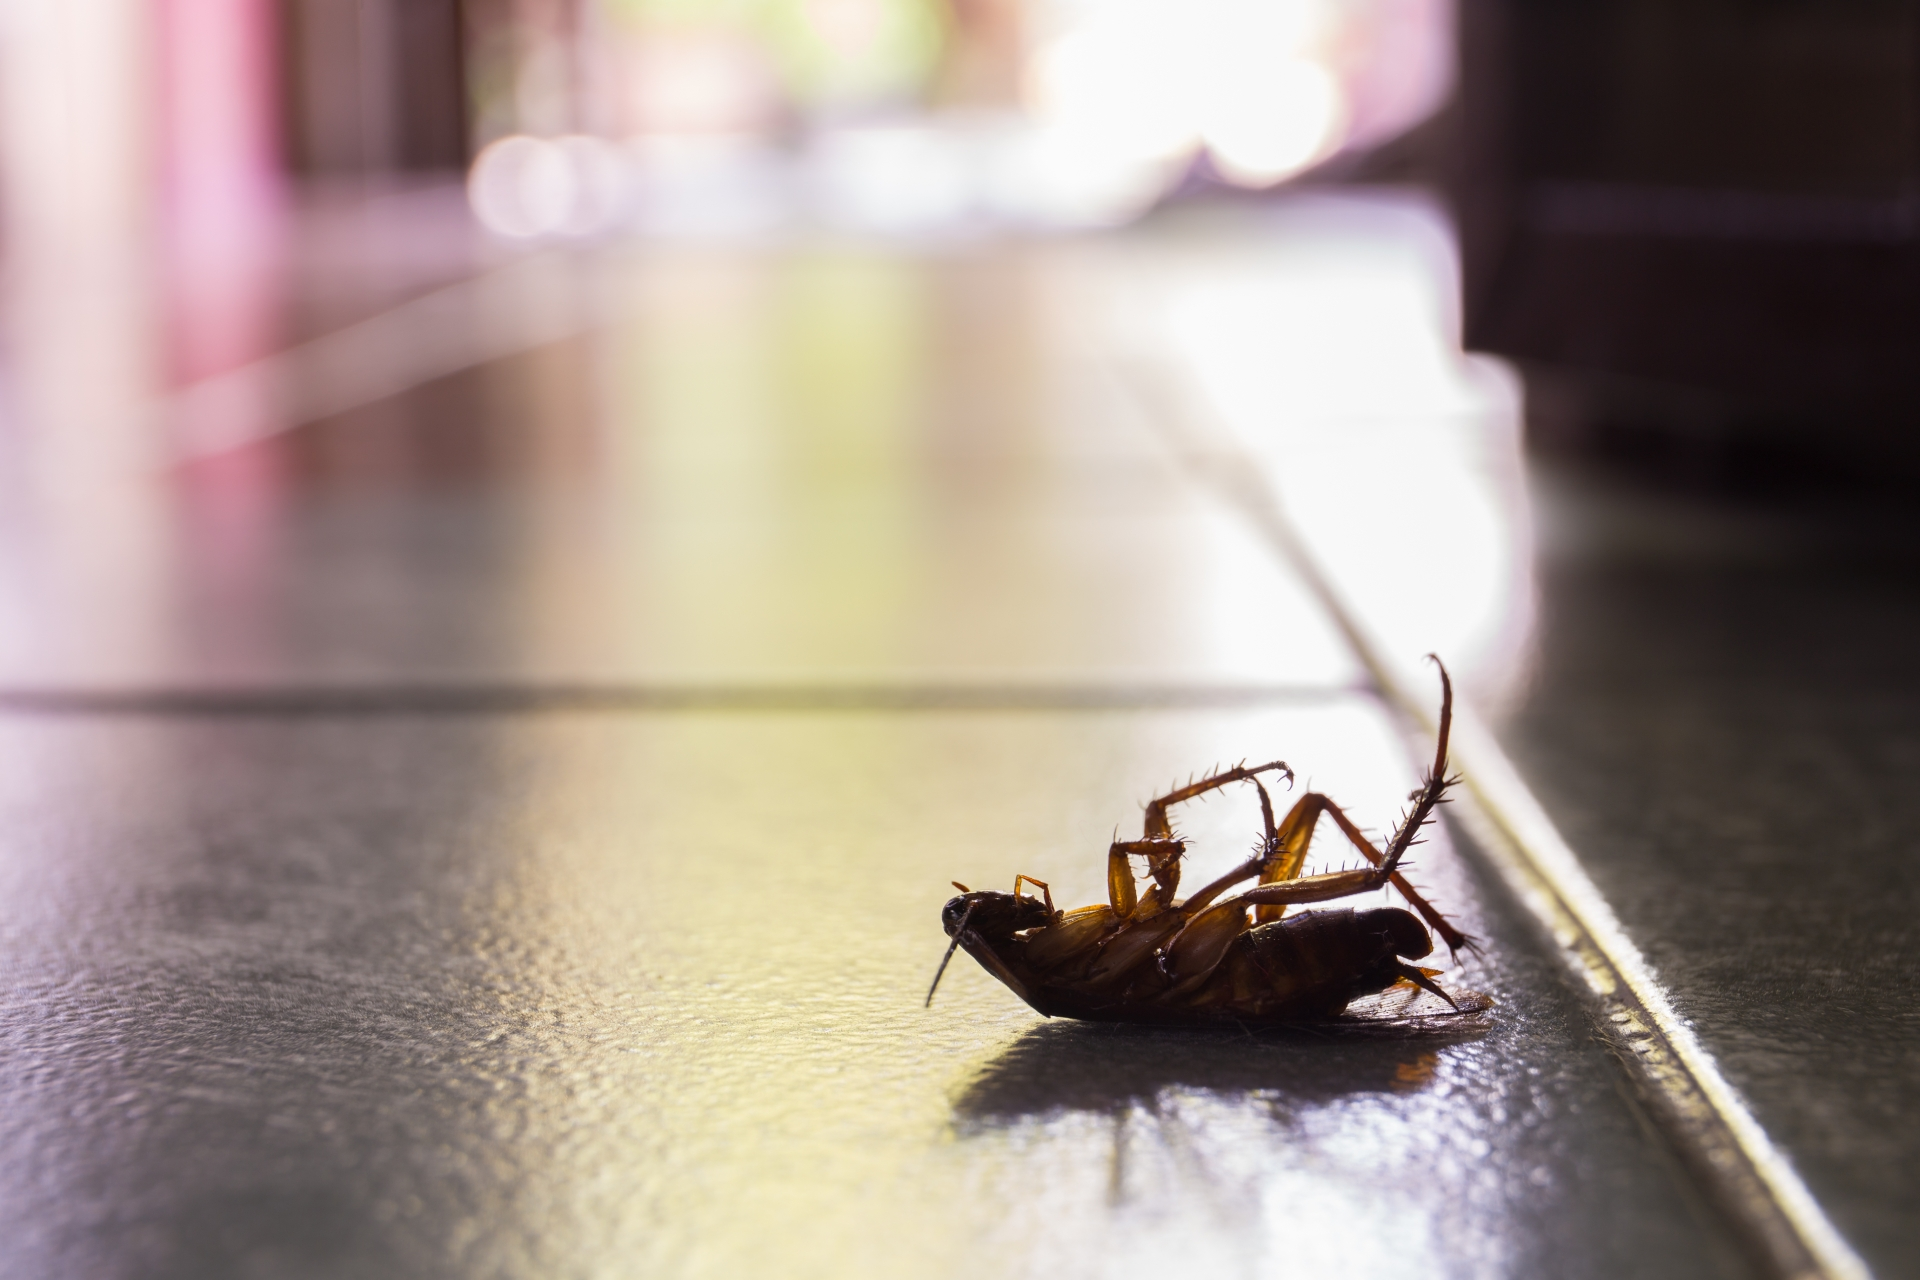 Cockroach Control, Pest Control in Upper Edmonton, N18. Call Now 020 8166 9746